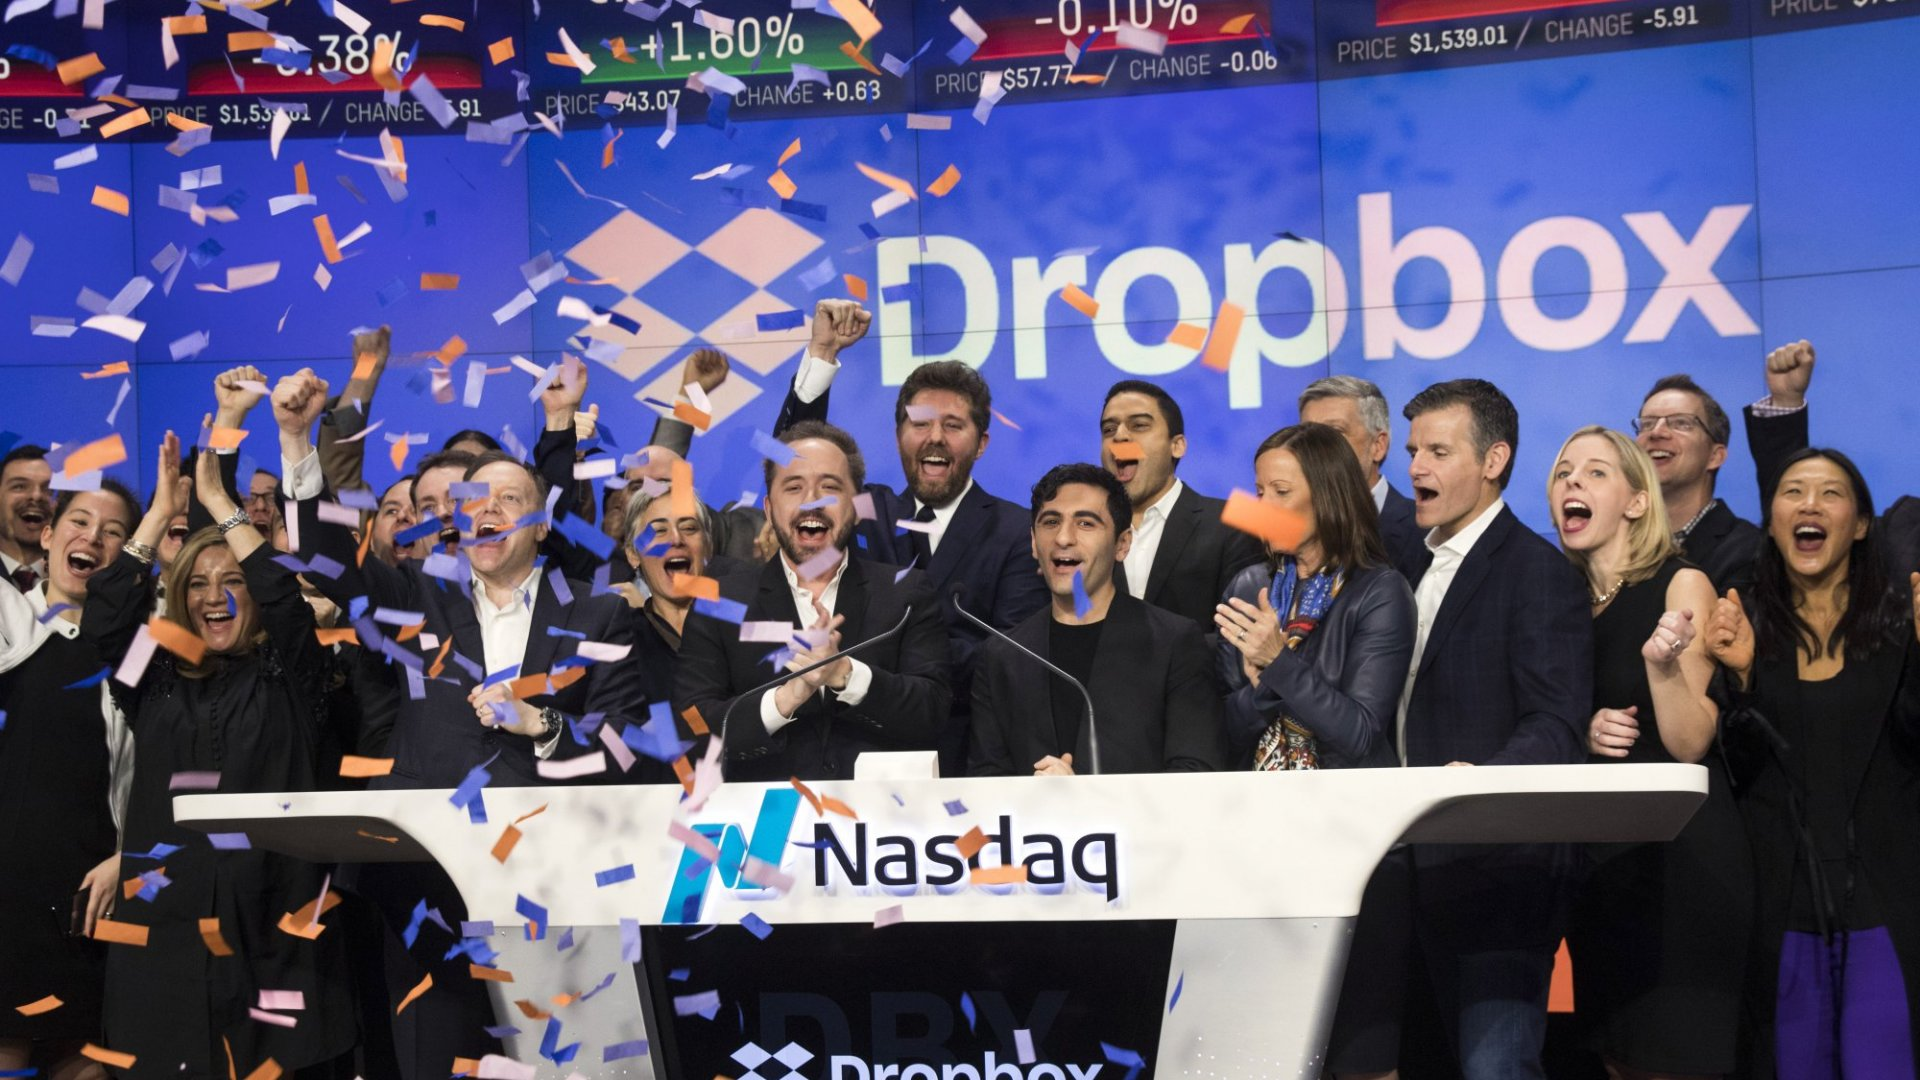 Want to Build a Billion-Dollar Business? Learn These Lessons from Dropbox